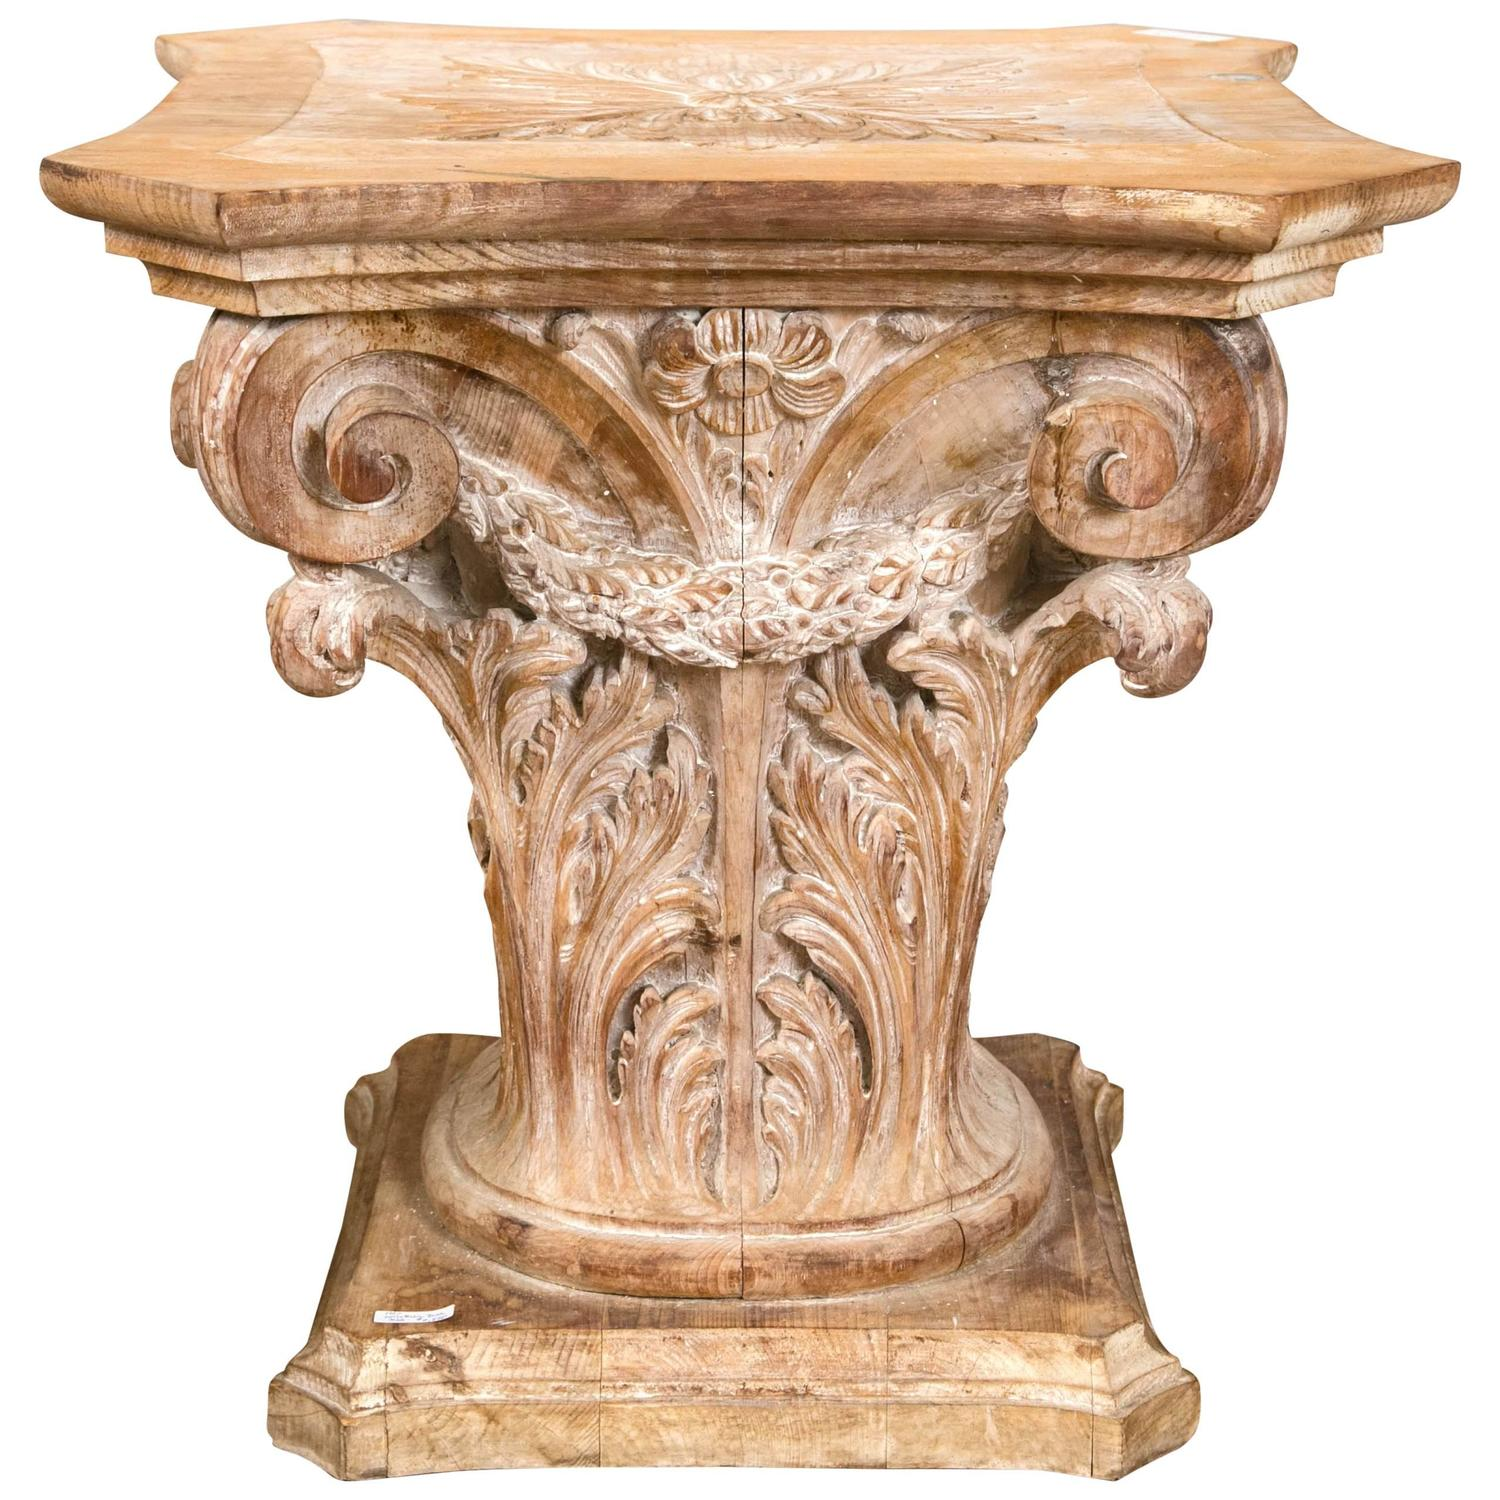 Wooden Corinthian Column Form Table Base at 1stdibs : 3749593z from www.1stdibs.com size 1500 x 1500 jpeg 247kB